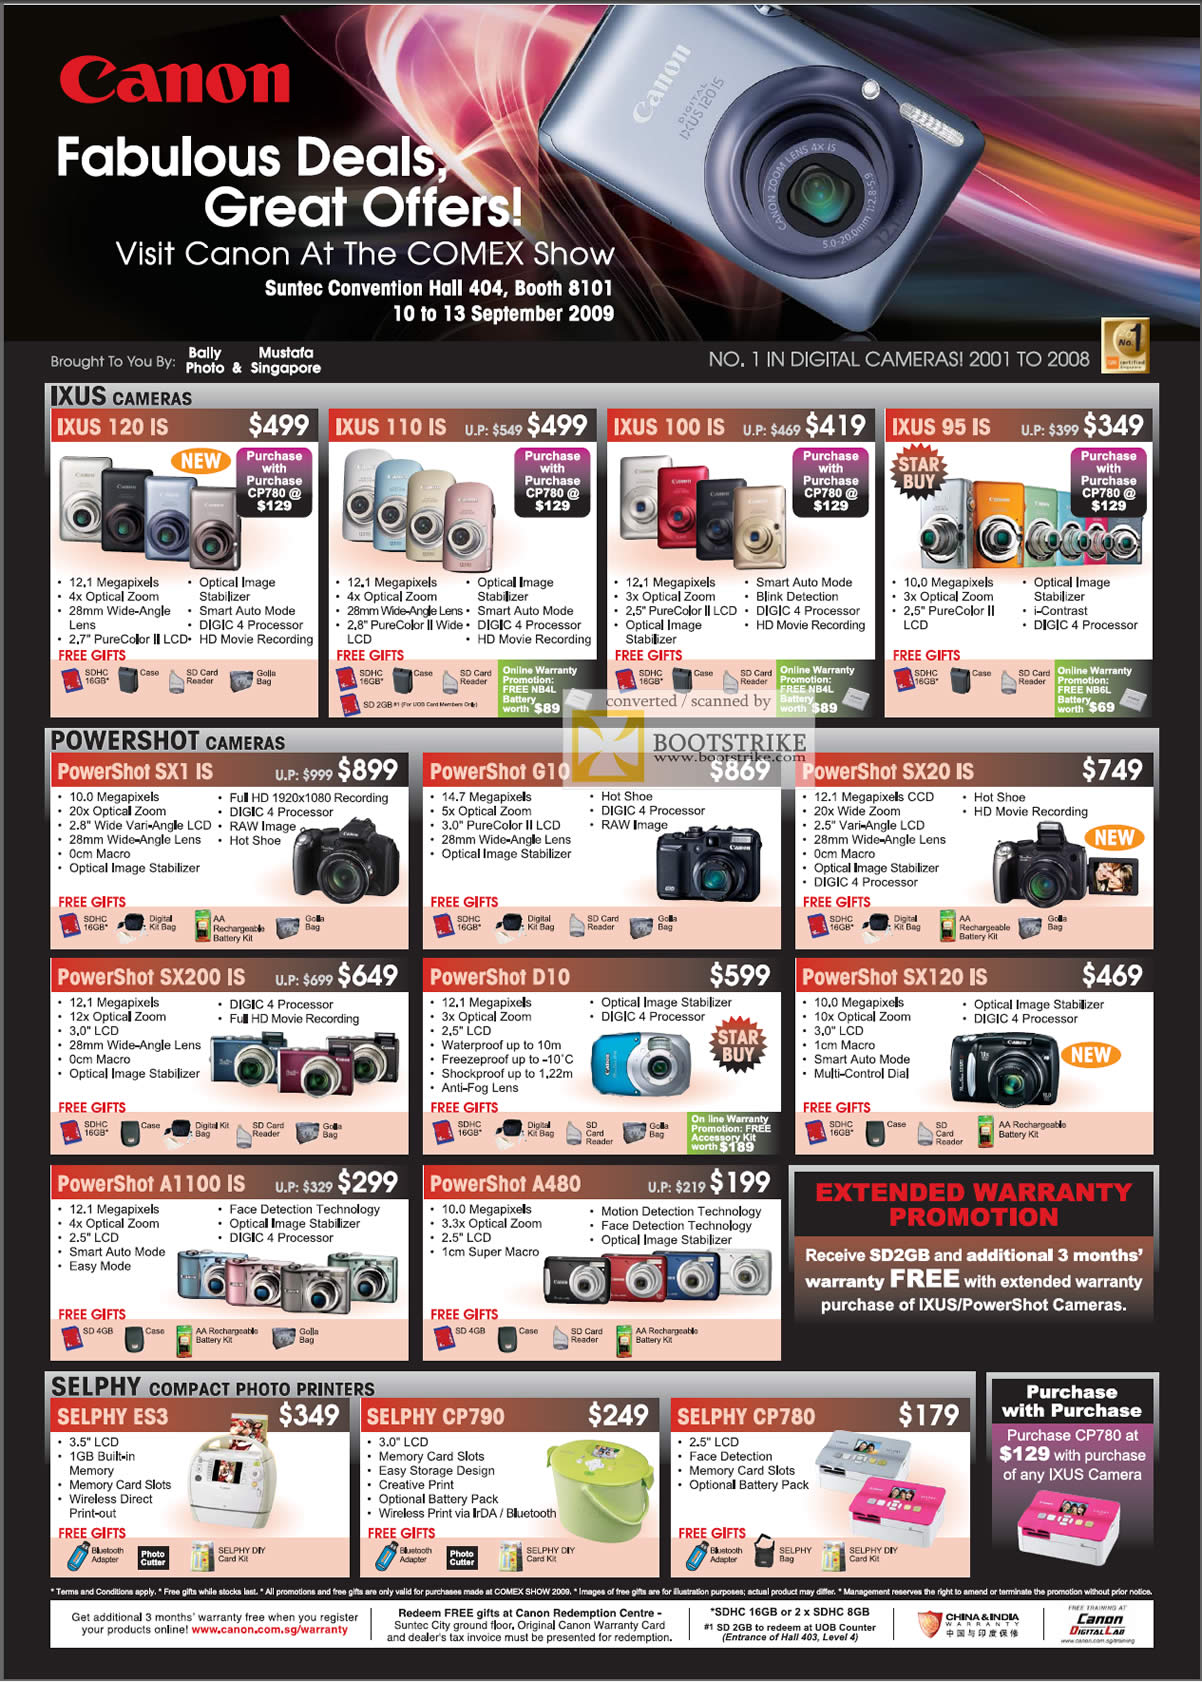 Comex 2009 price list image brochure of Canon Cameras IXUS PowerShot Selphy Compact Photo Printers